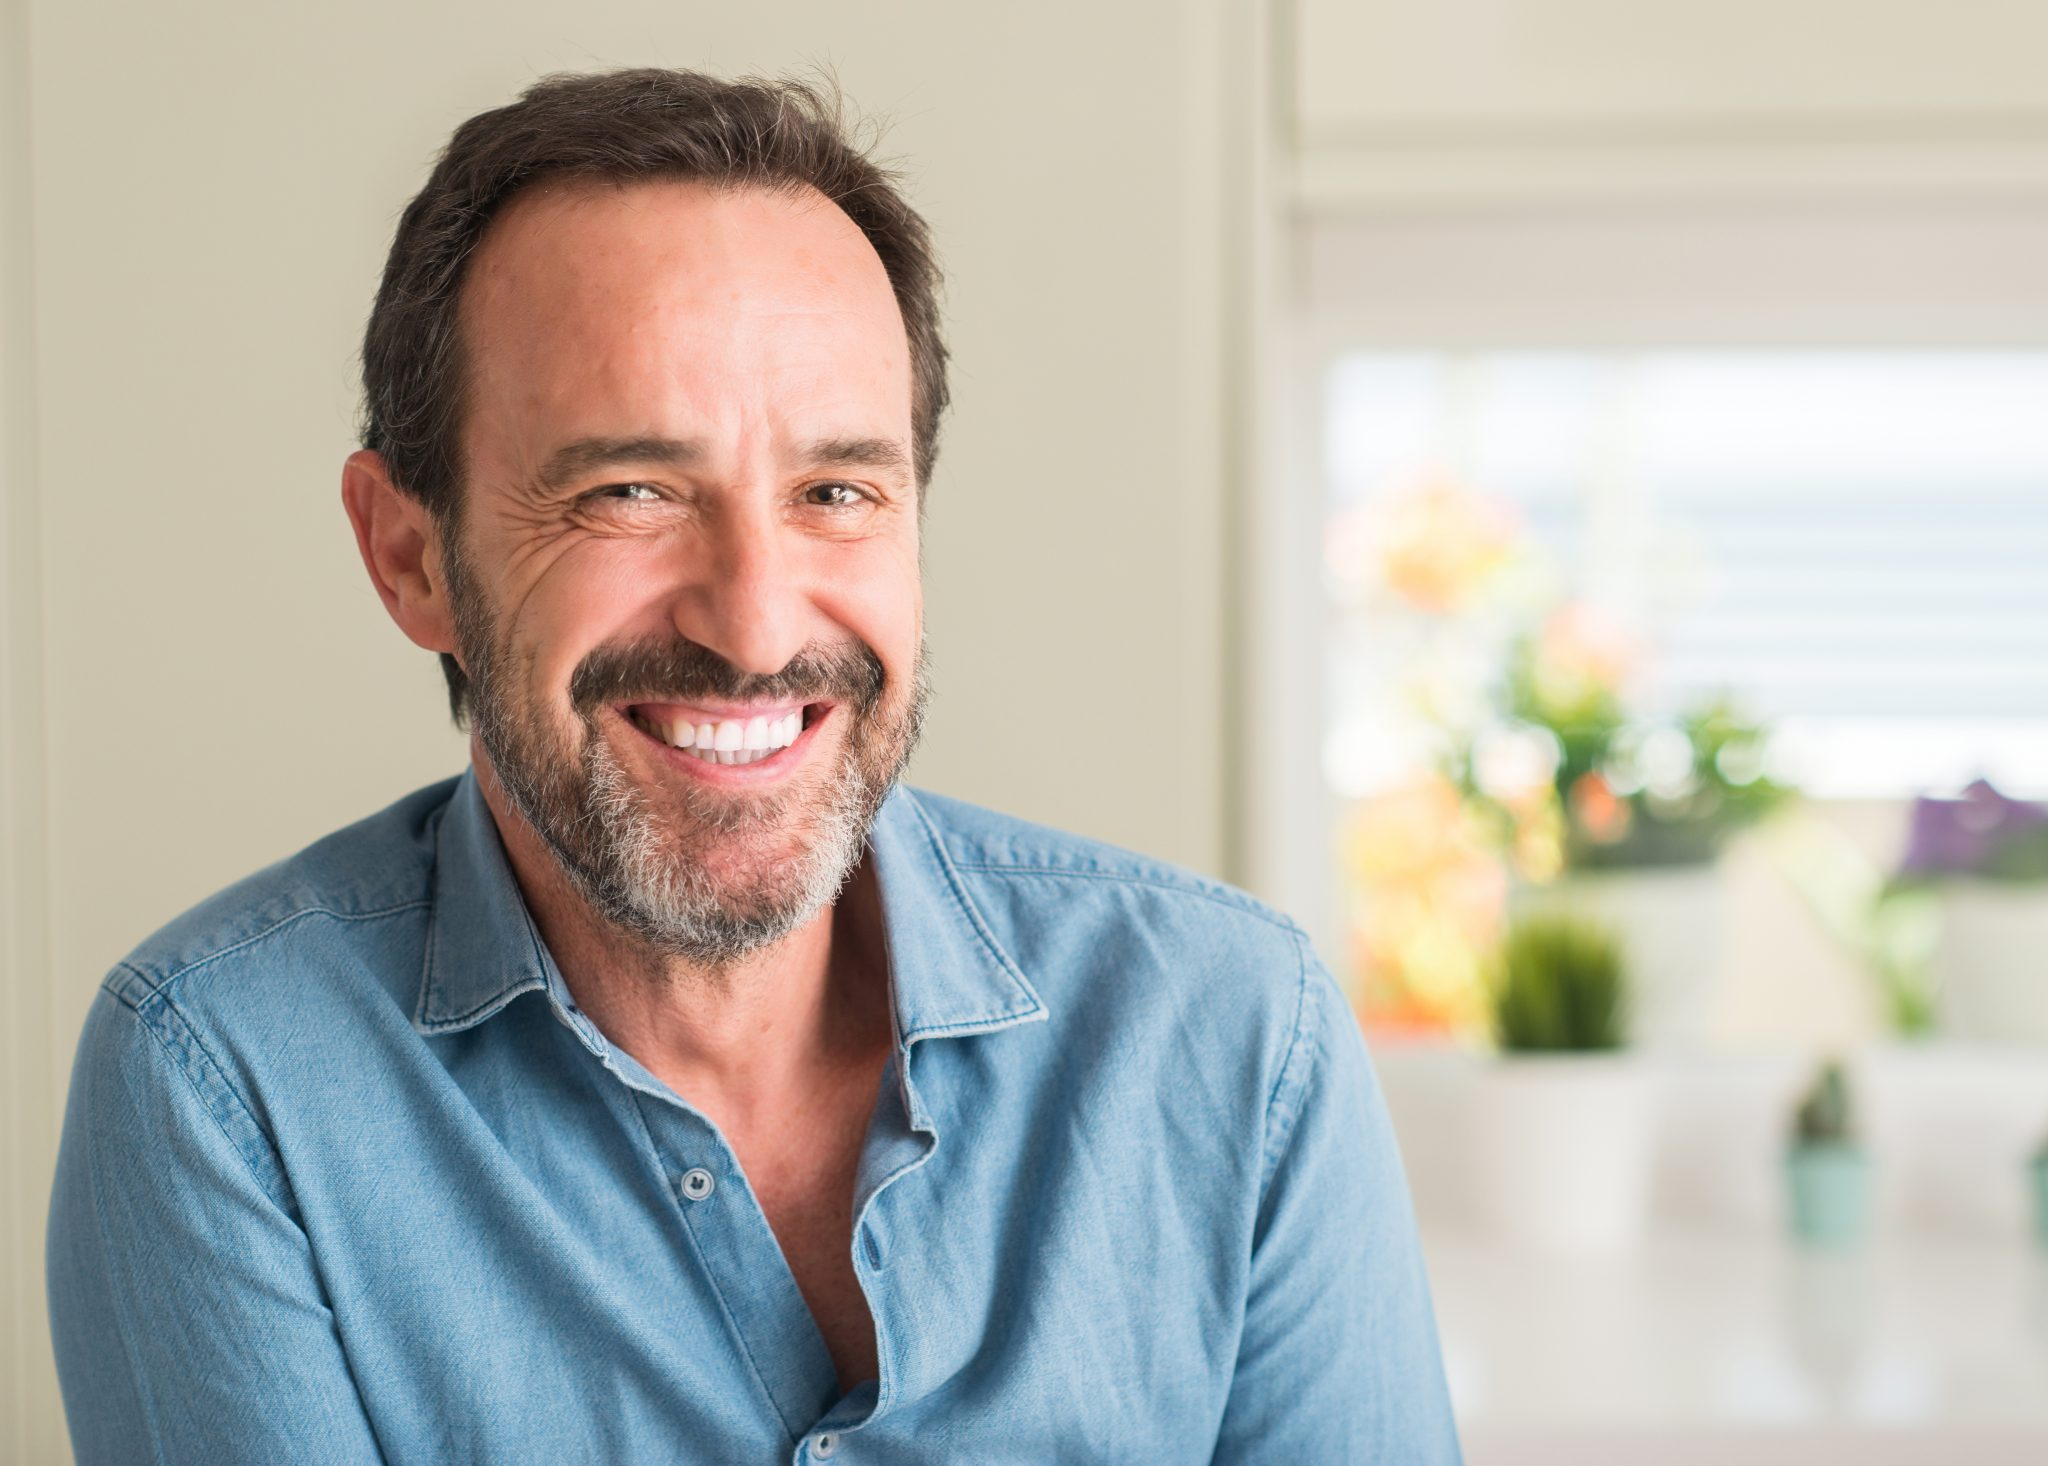 Handsome Middle Age Man With A Happy Face Standing And Smiling With A Confident Smile Showing Teeth